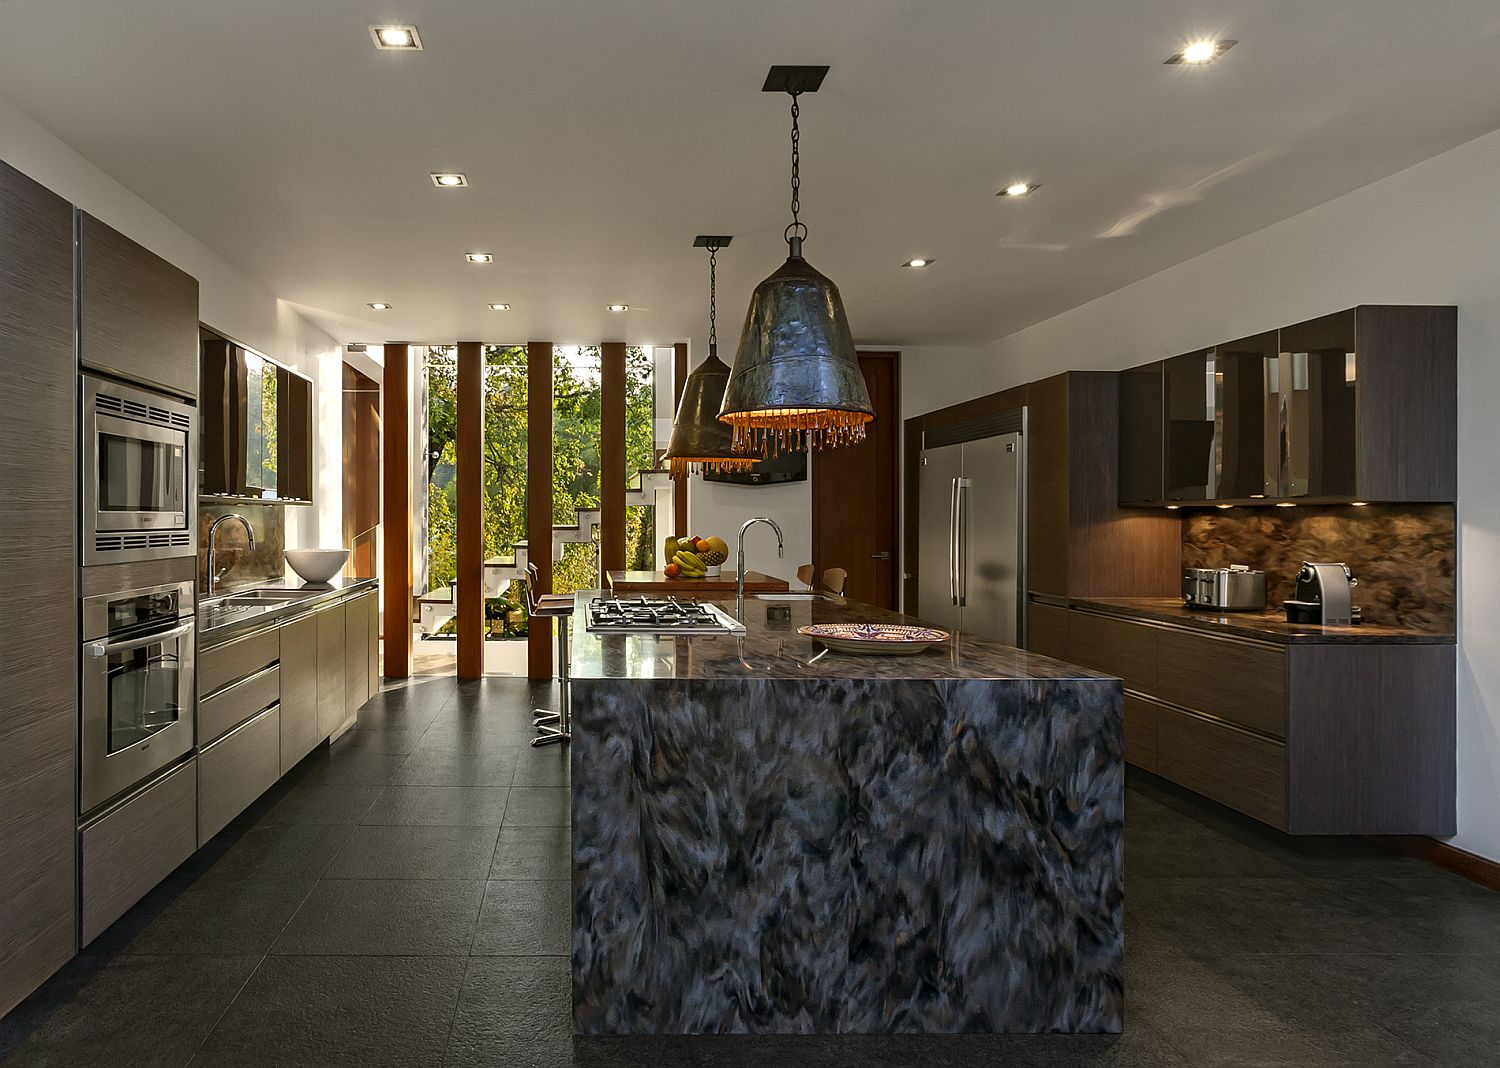 Unique-pendants-with-metallic-glint-and-custom-kitchen-island-in-stone